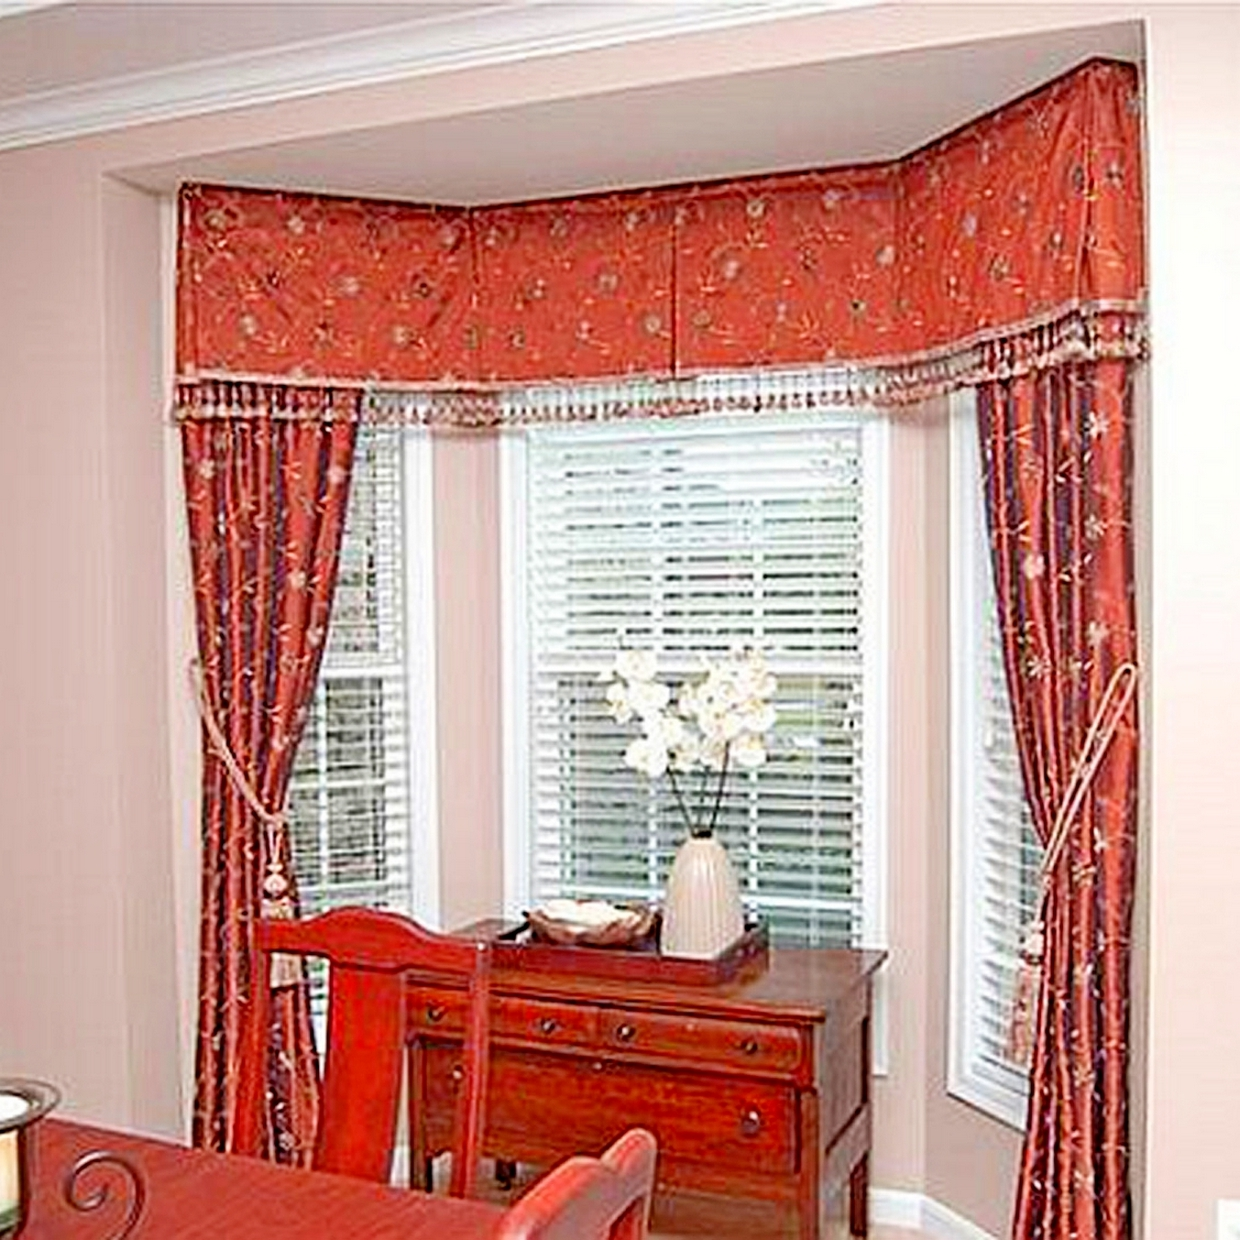 Casual dining room curtains - Amazing Red Casual Dining Room Curtains Ideas For